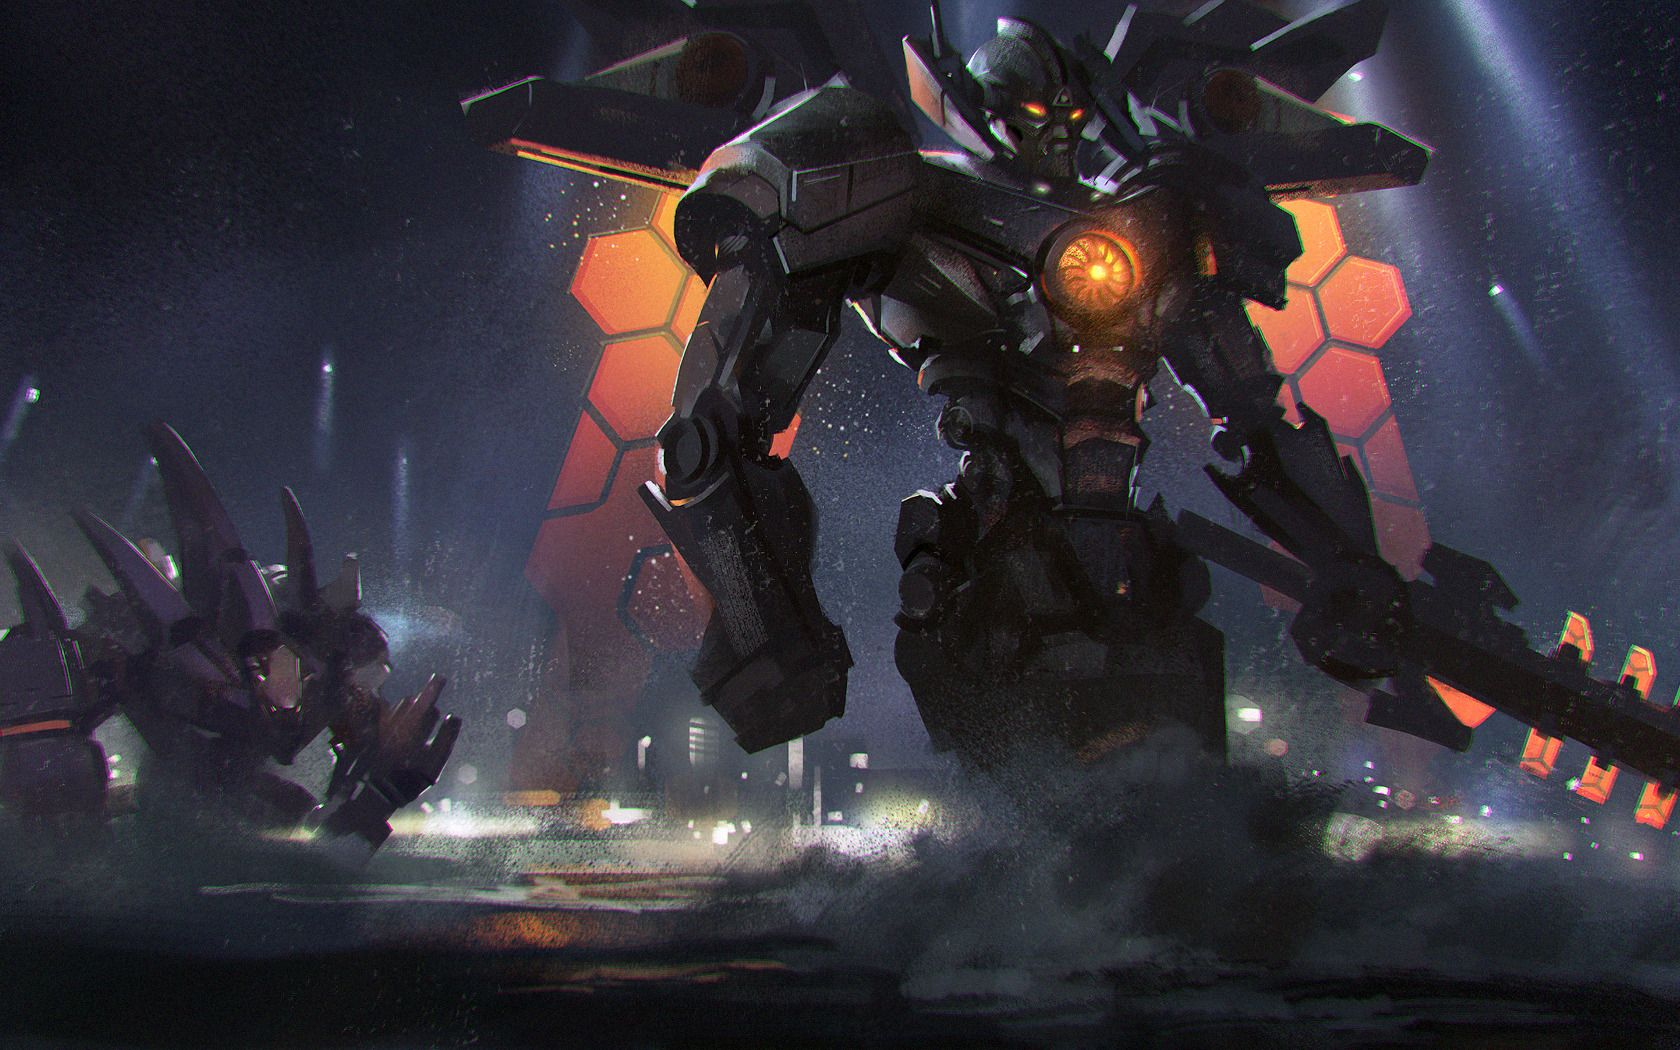 Download Hd Wallpapers Of 129026 League Of Legends Pacific Rim